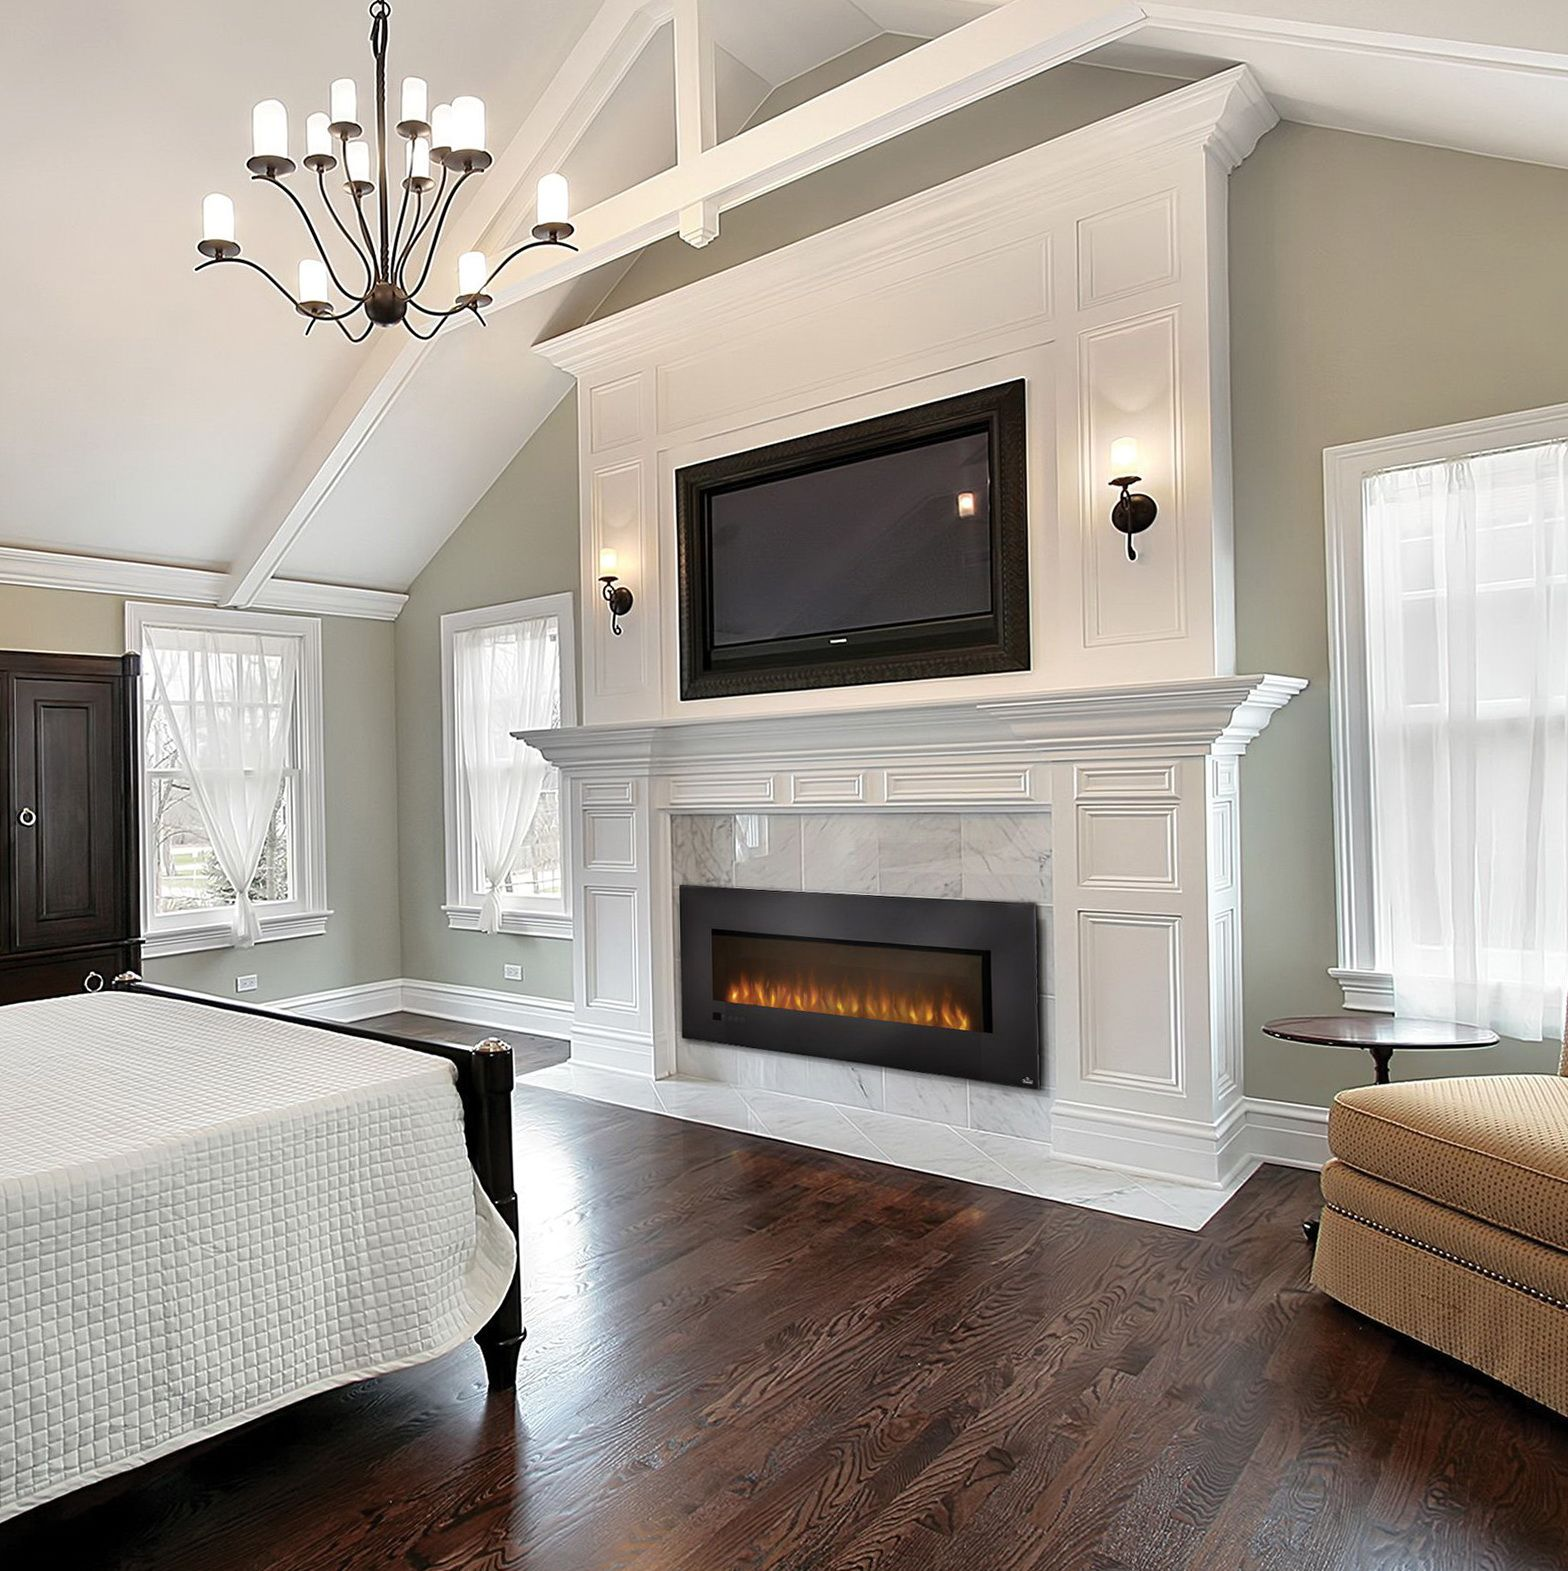 Bedroom electric fireplace - Electric Fireplace Insert